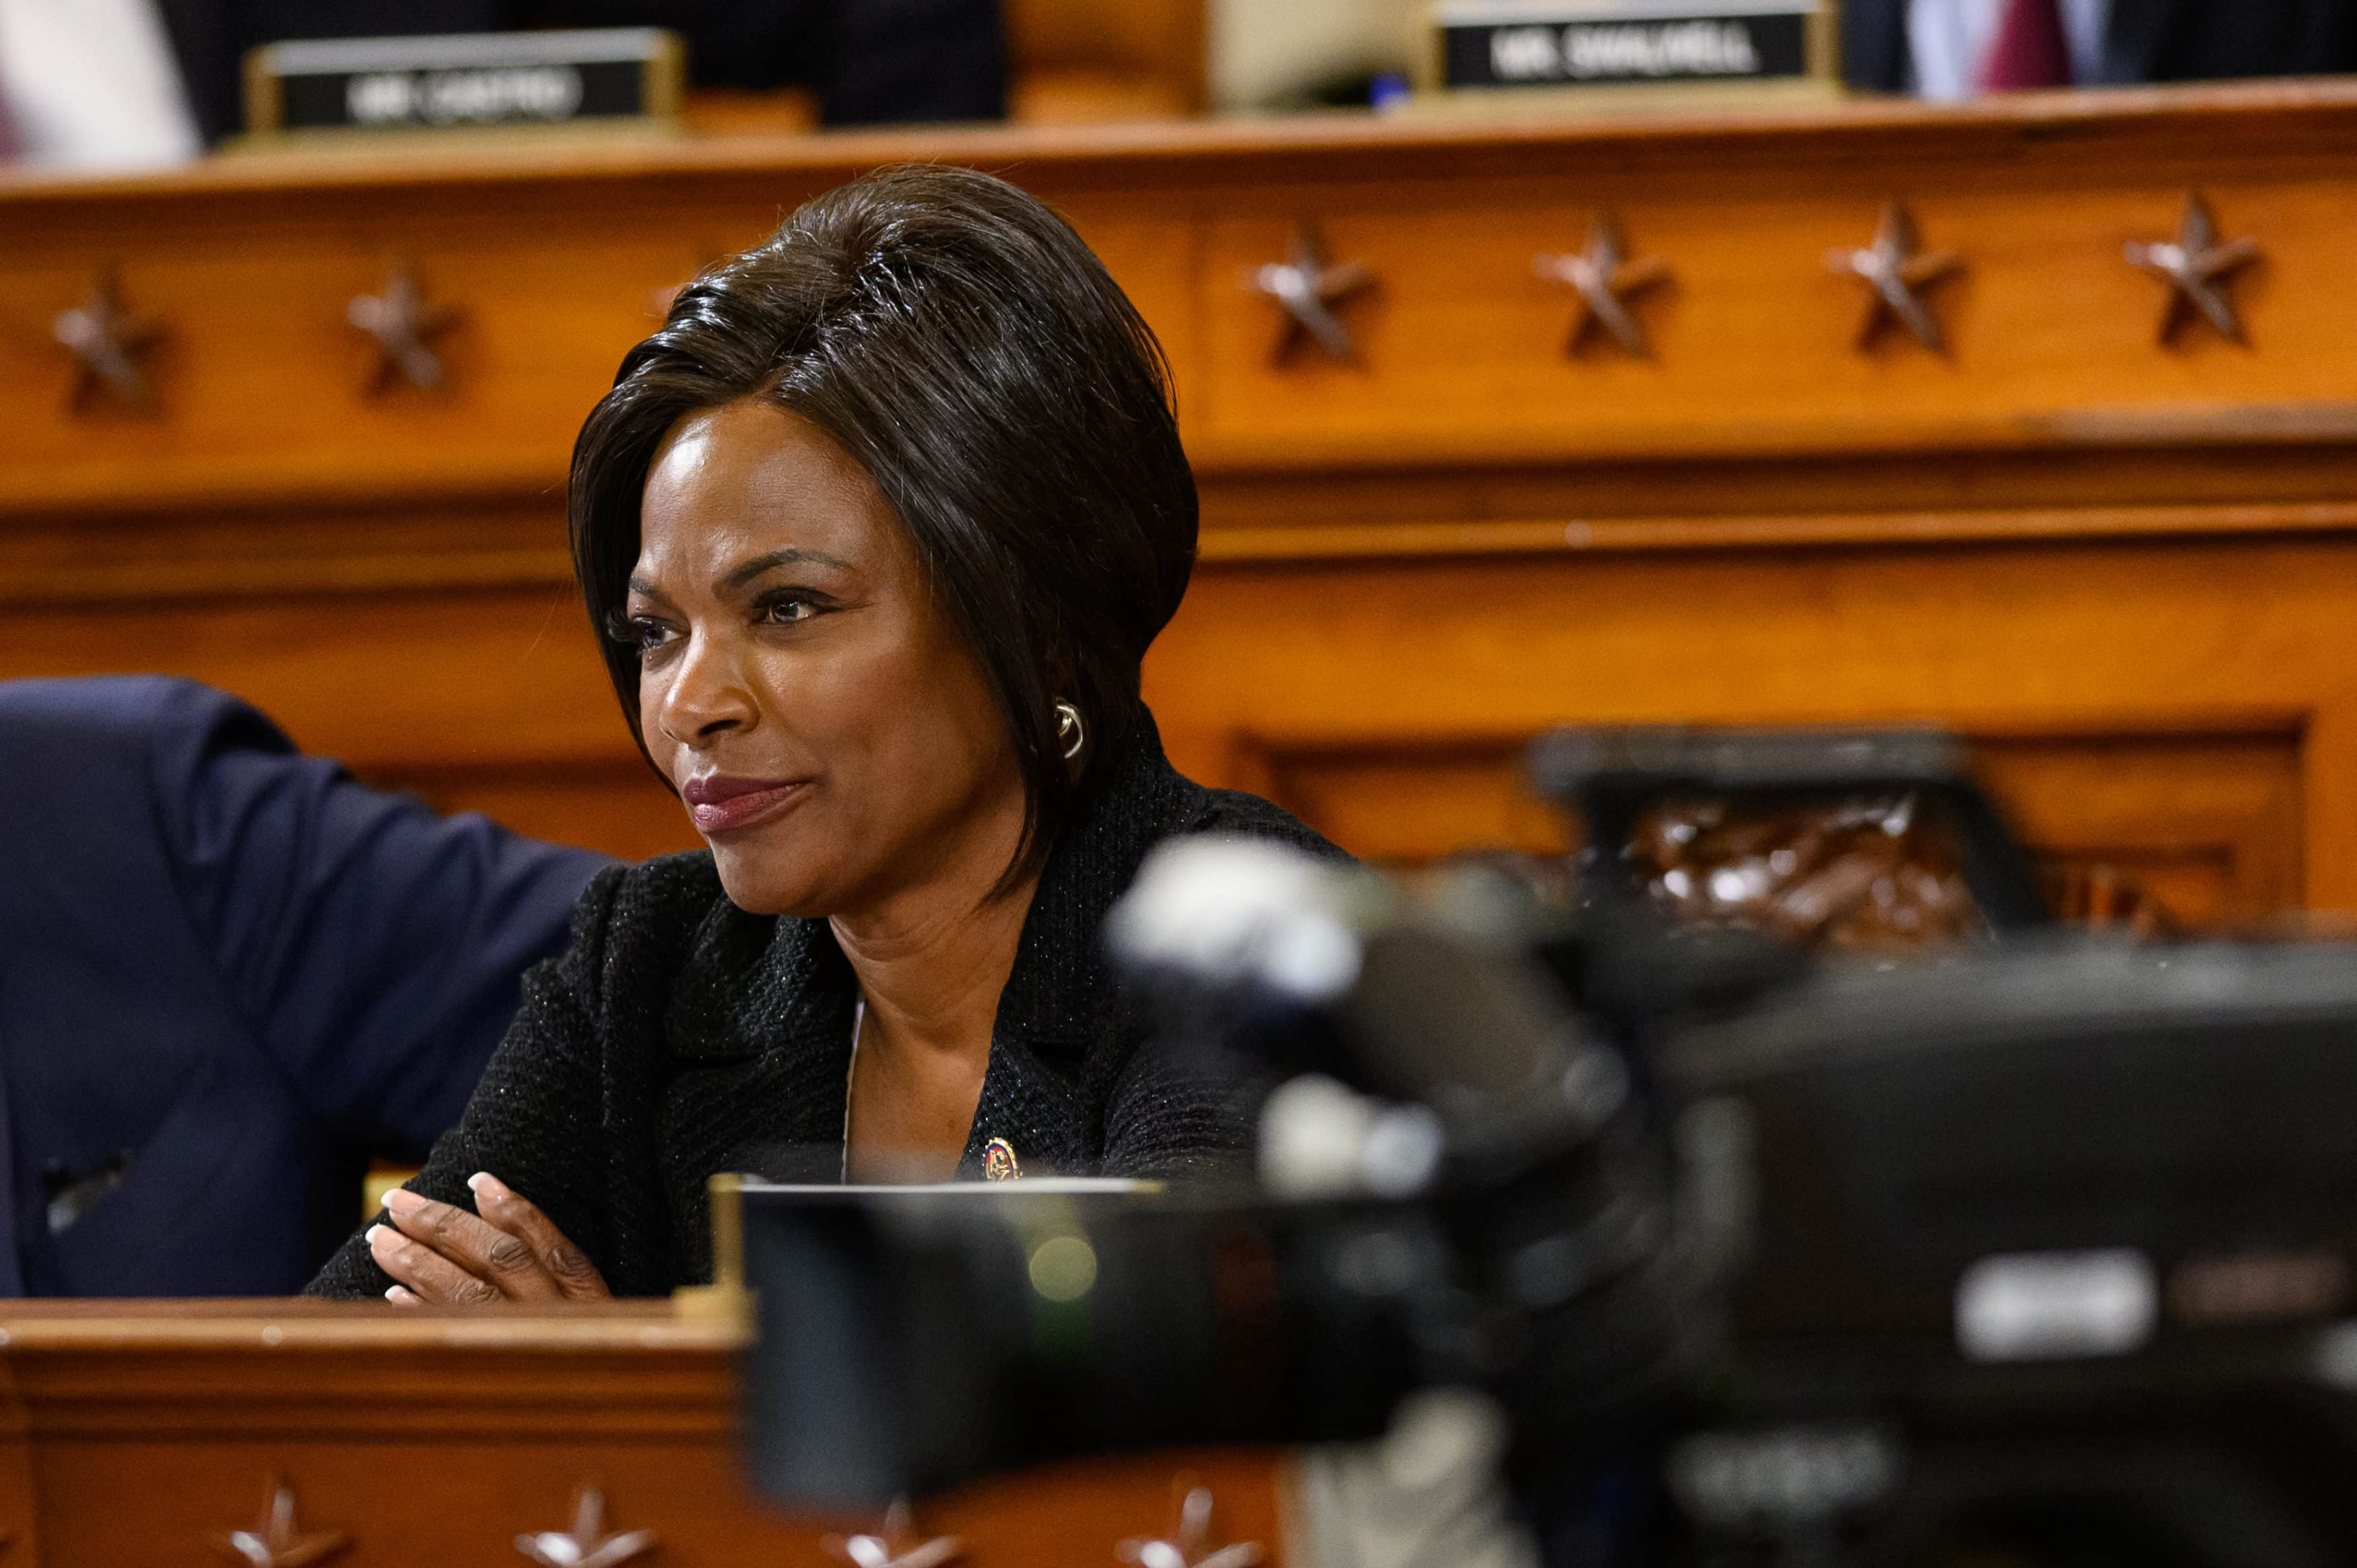 Val-Demings-committee-1-3500x2329.jpg